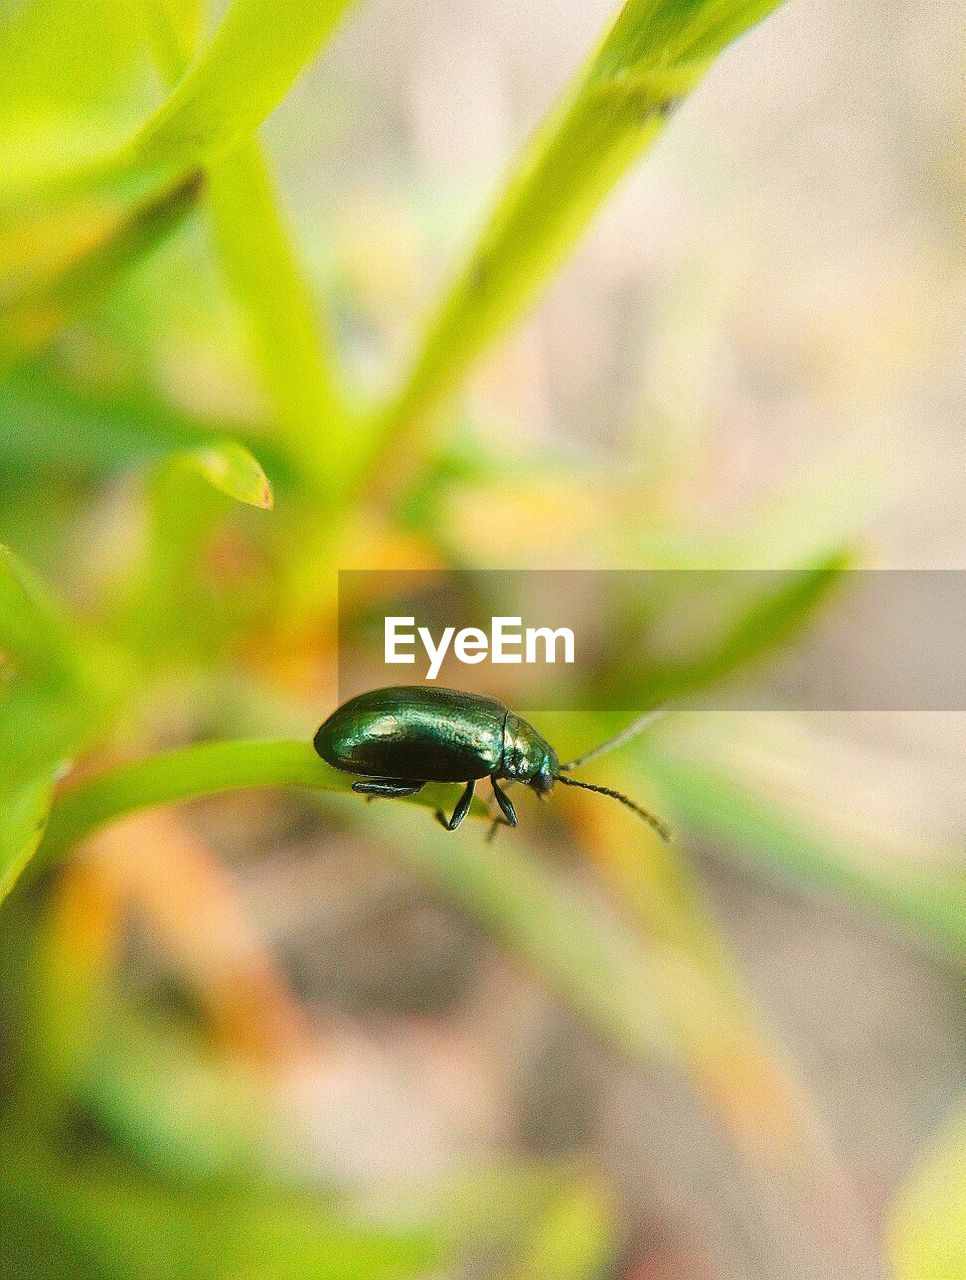 invertebrate, one animal, insect, animal themes, animals in the wild, animal, animal wildlife, close-up, plant, day, nature, no people, selective focus, focus on foreground, growth, green color, outdoors, beauty in nature, zoology, plant part, blade of grass